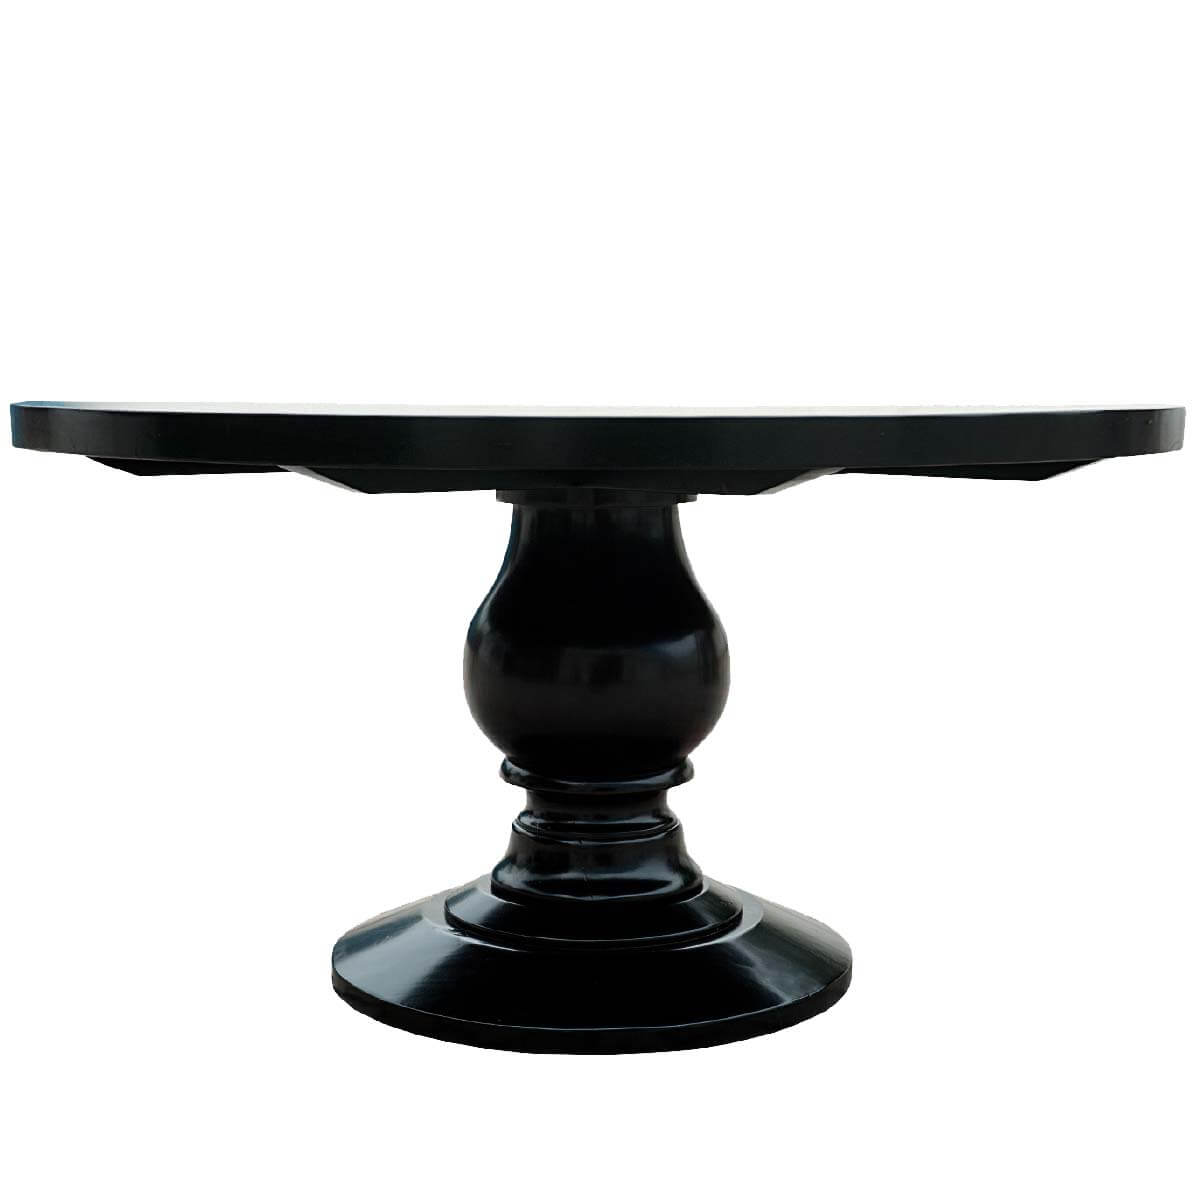 Sutton Black Baluster Pedestal Traditional Wood Round  : 54141 from www.sierralivingconcepts.com size 1200 x 1200 jpeg 59kB